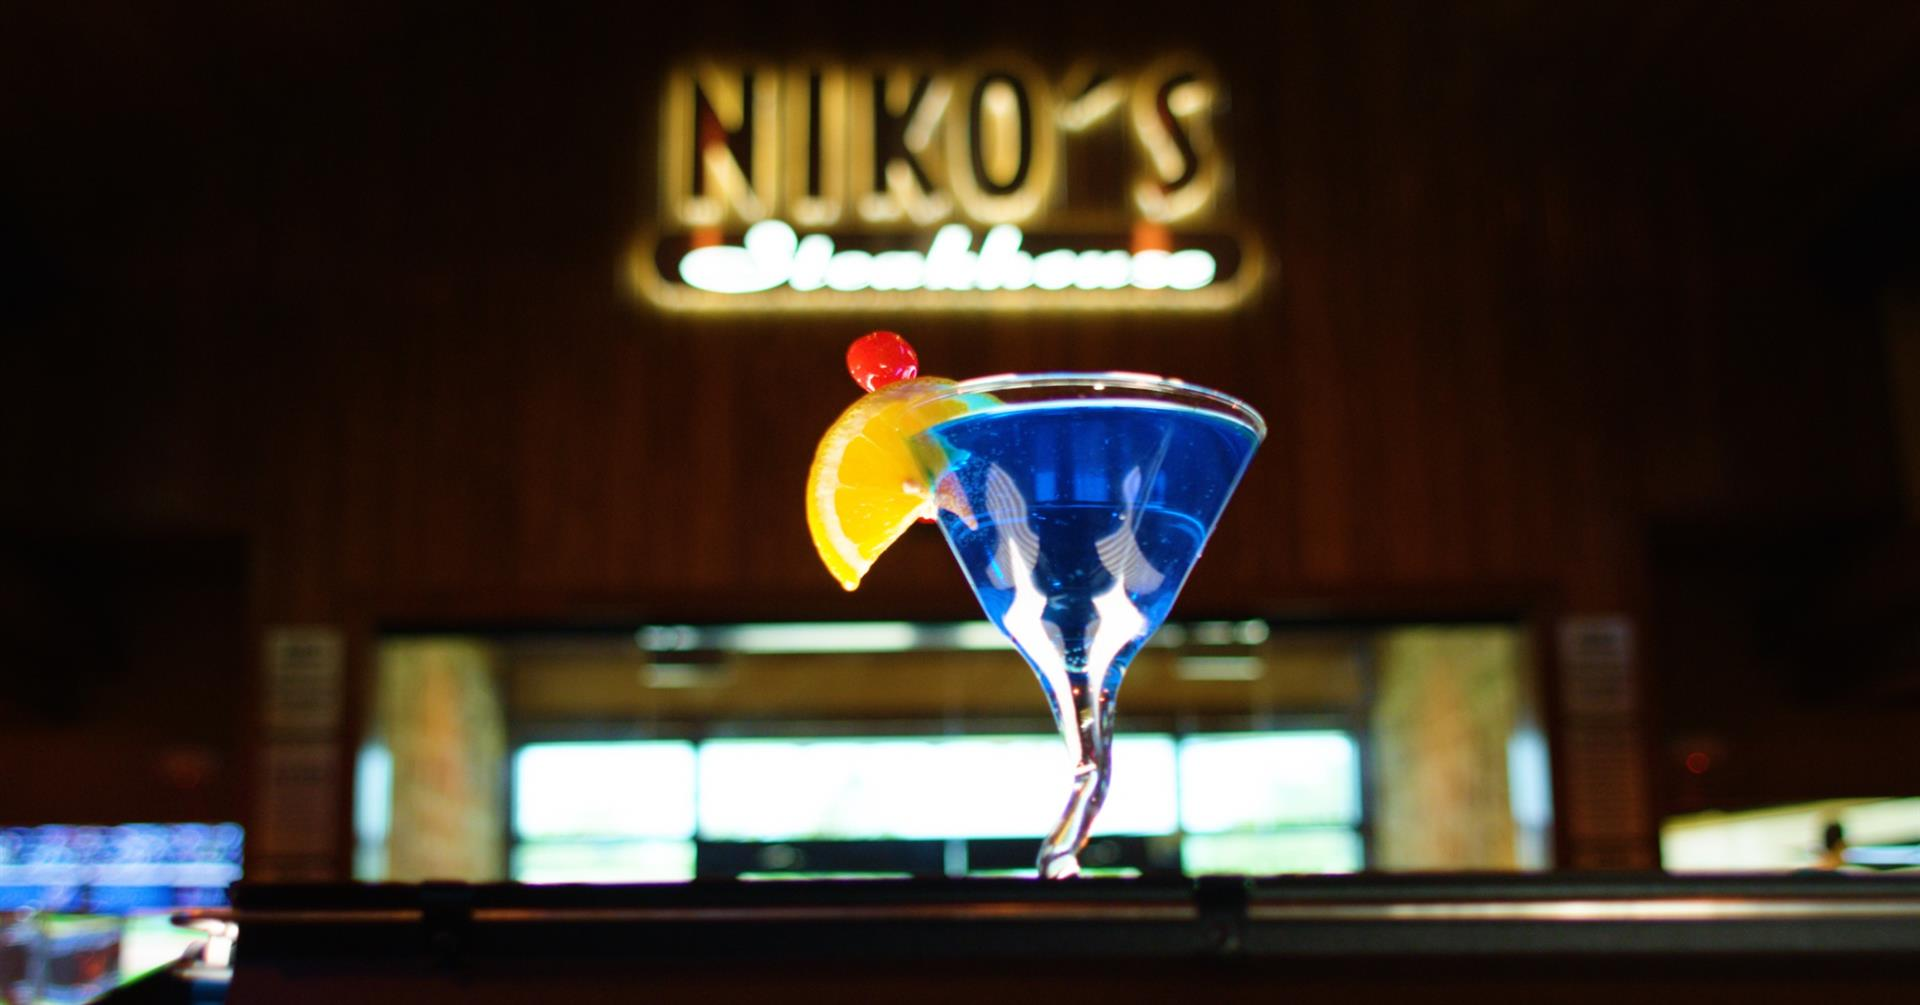 blurred out restaurant sign with a blue martini with a orange and cherry garnish